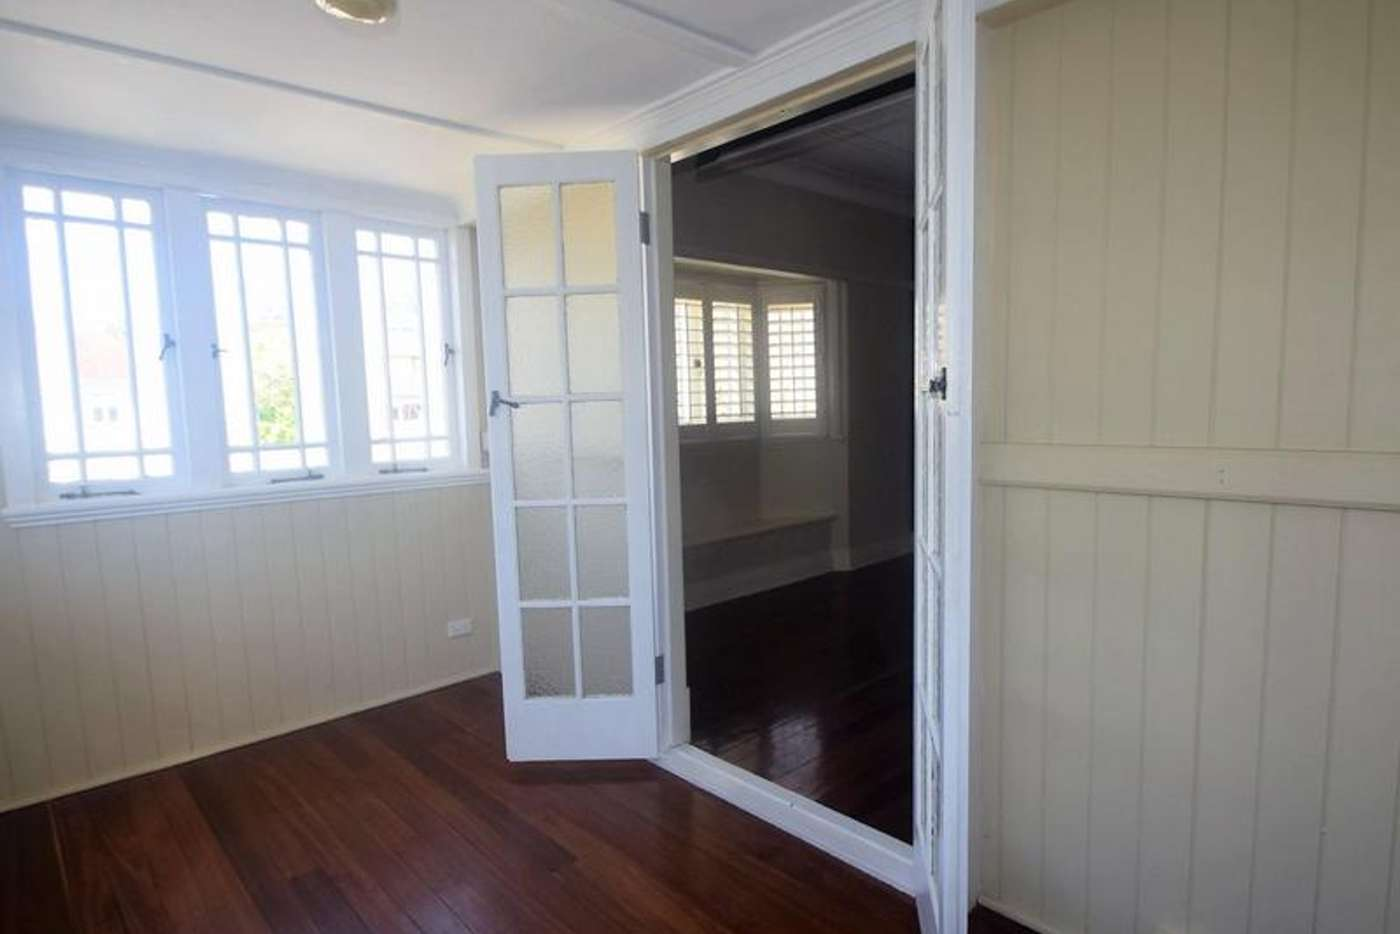 Seventh view of Homely house listing, 87 Ridge Street, Greenslopes QLD 4120